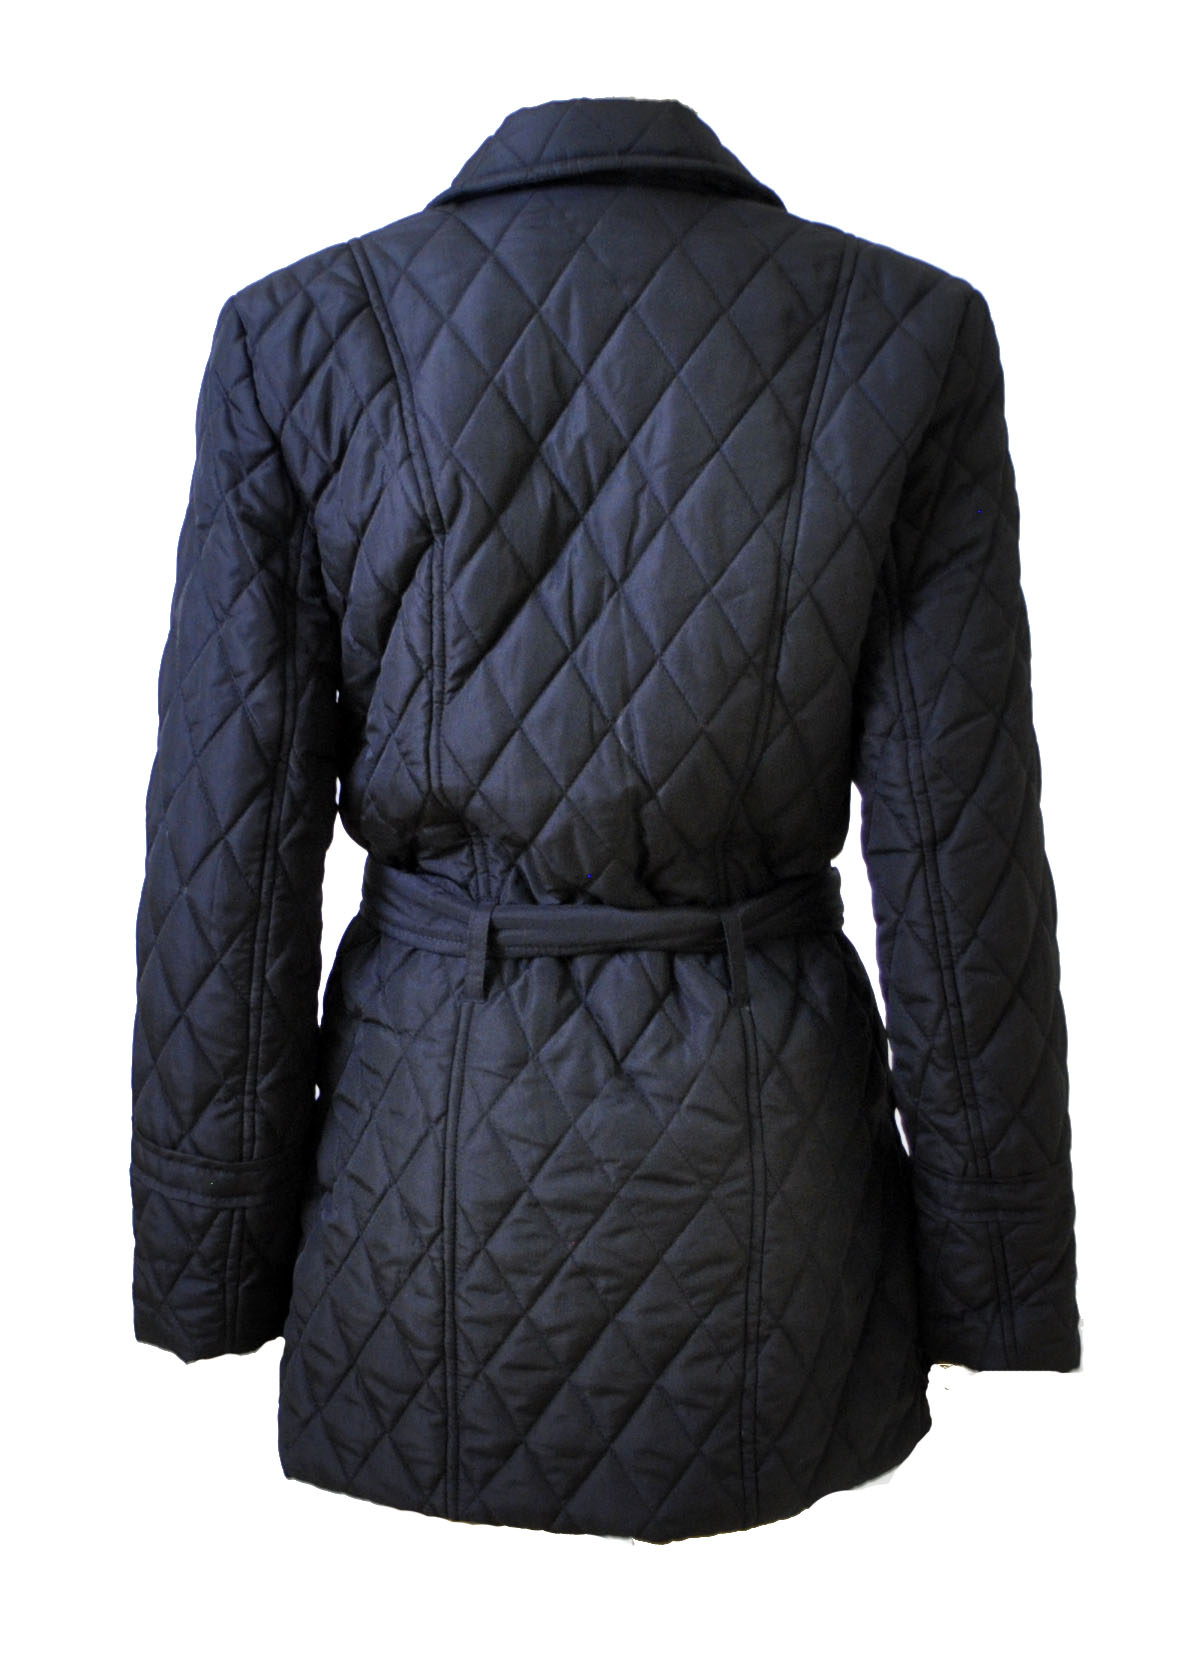 Free shipping and returns on quilted jackets for women at tennesseemyblogw0.cf Shop moto jackets, goose down jackets and more. Check out our entire collection.